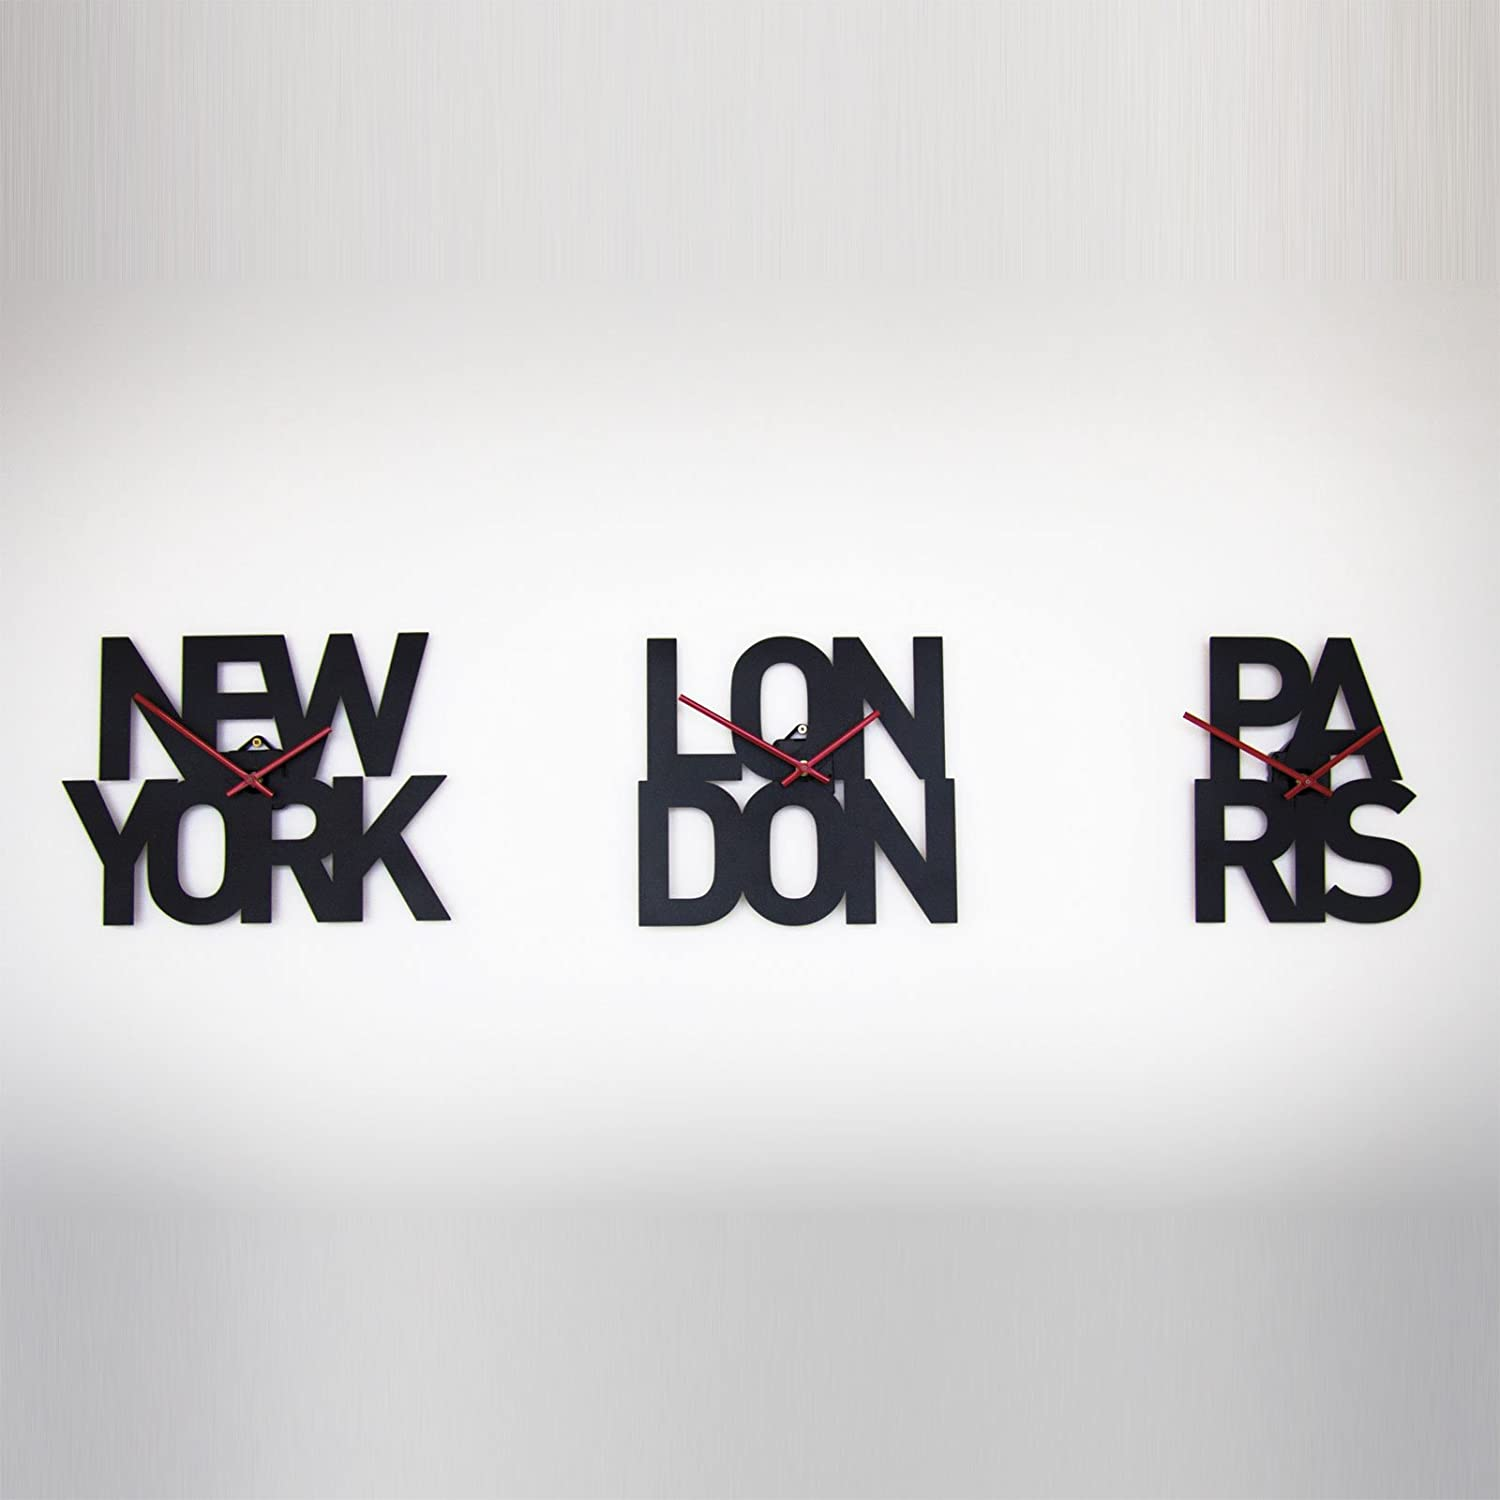 Set of 3 designer typographic city time zone wall clocks new set of 3 designer typographic city time zone wall clocks new york london paris amazon kitchen home amipublicfo Gallery